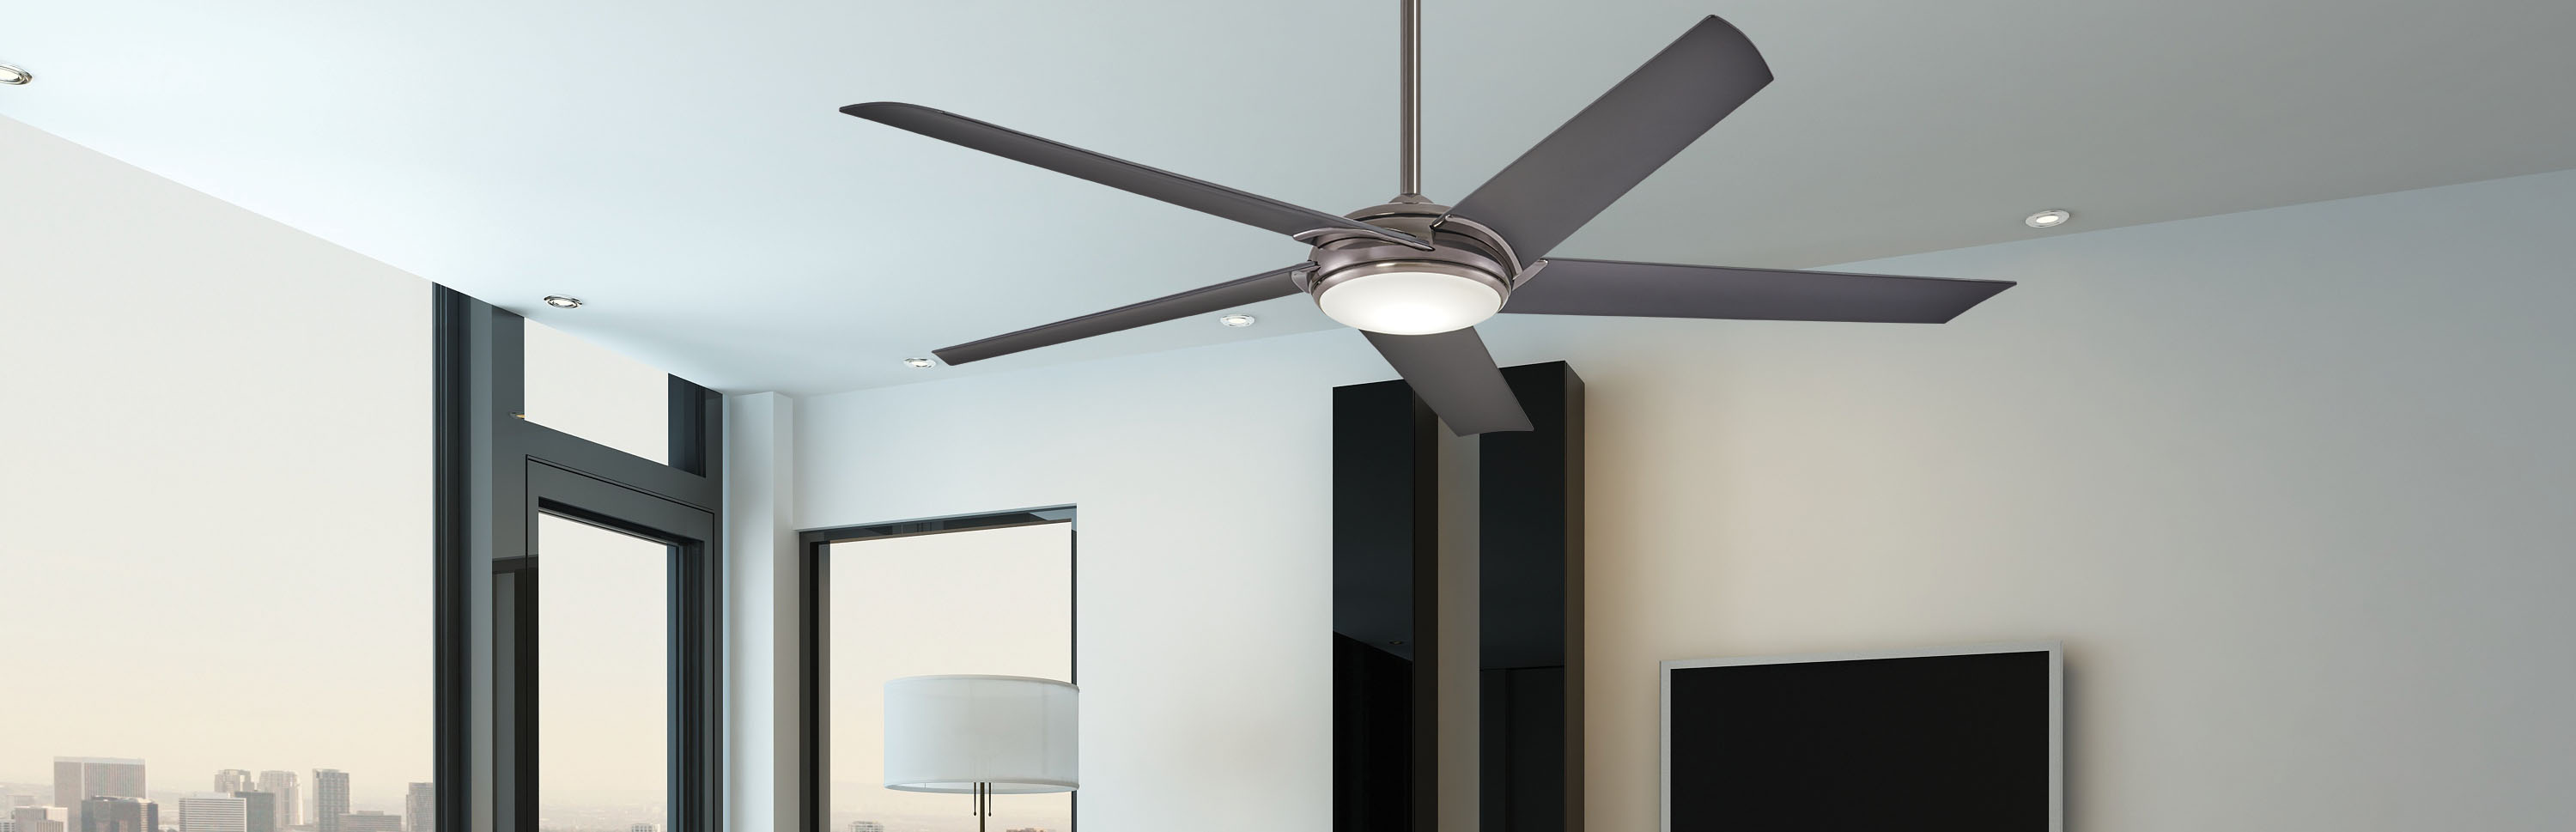 Minka Group Brands Airereg Ceiling Fan Google On 3 Wires And Wiring A Without Light Image With No Description